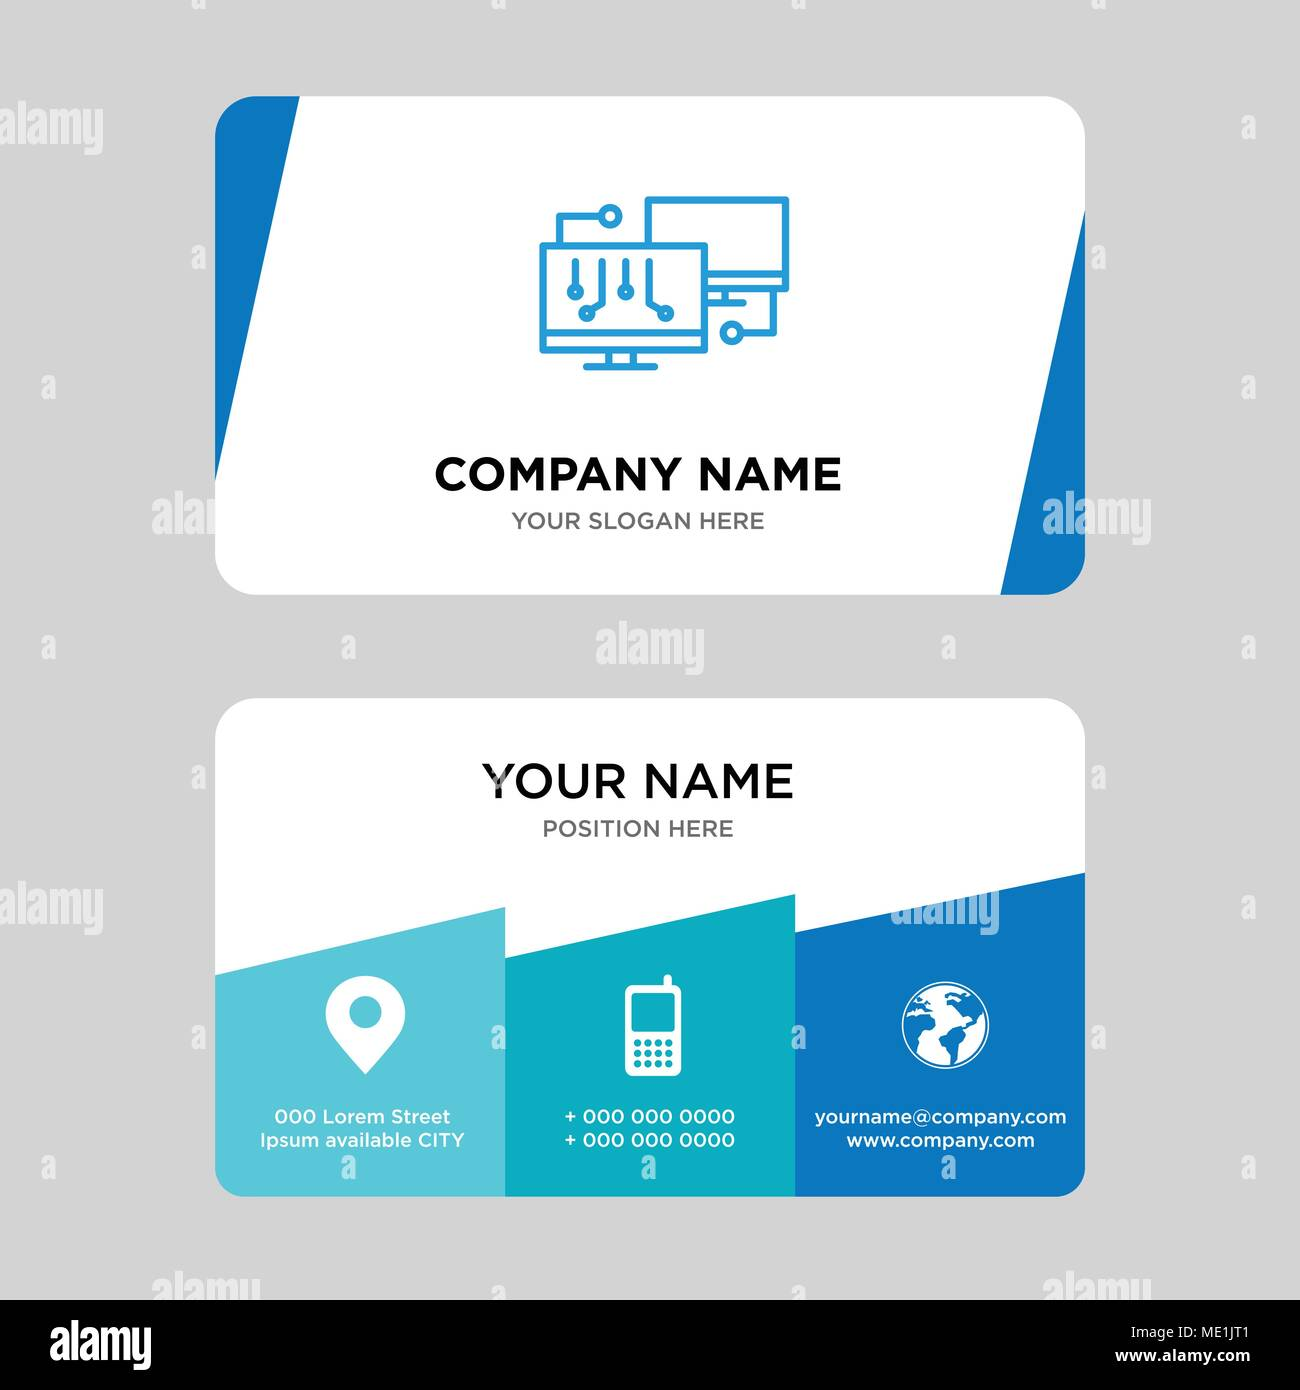 Network business card design template visiting for your company network business card design template visiting for your company modern creative and clean identity card vector illustration fbccfo Image collections